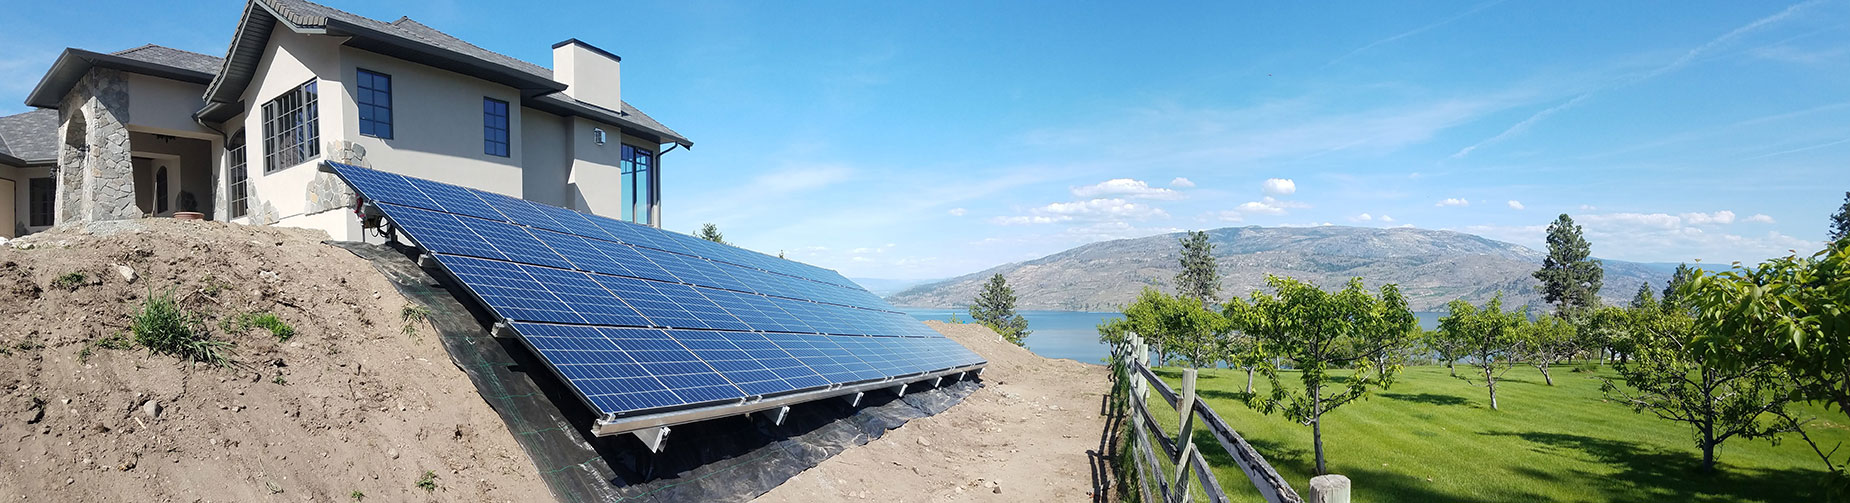 Okanagan Solar specializes in both solar and wind power and serves all locations in BC and even the Canadian north!